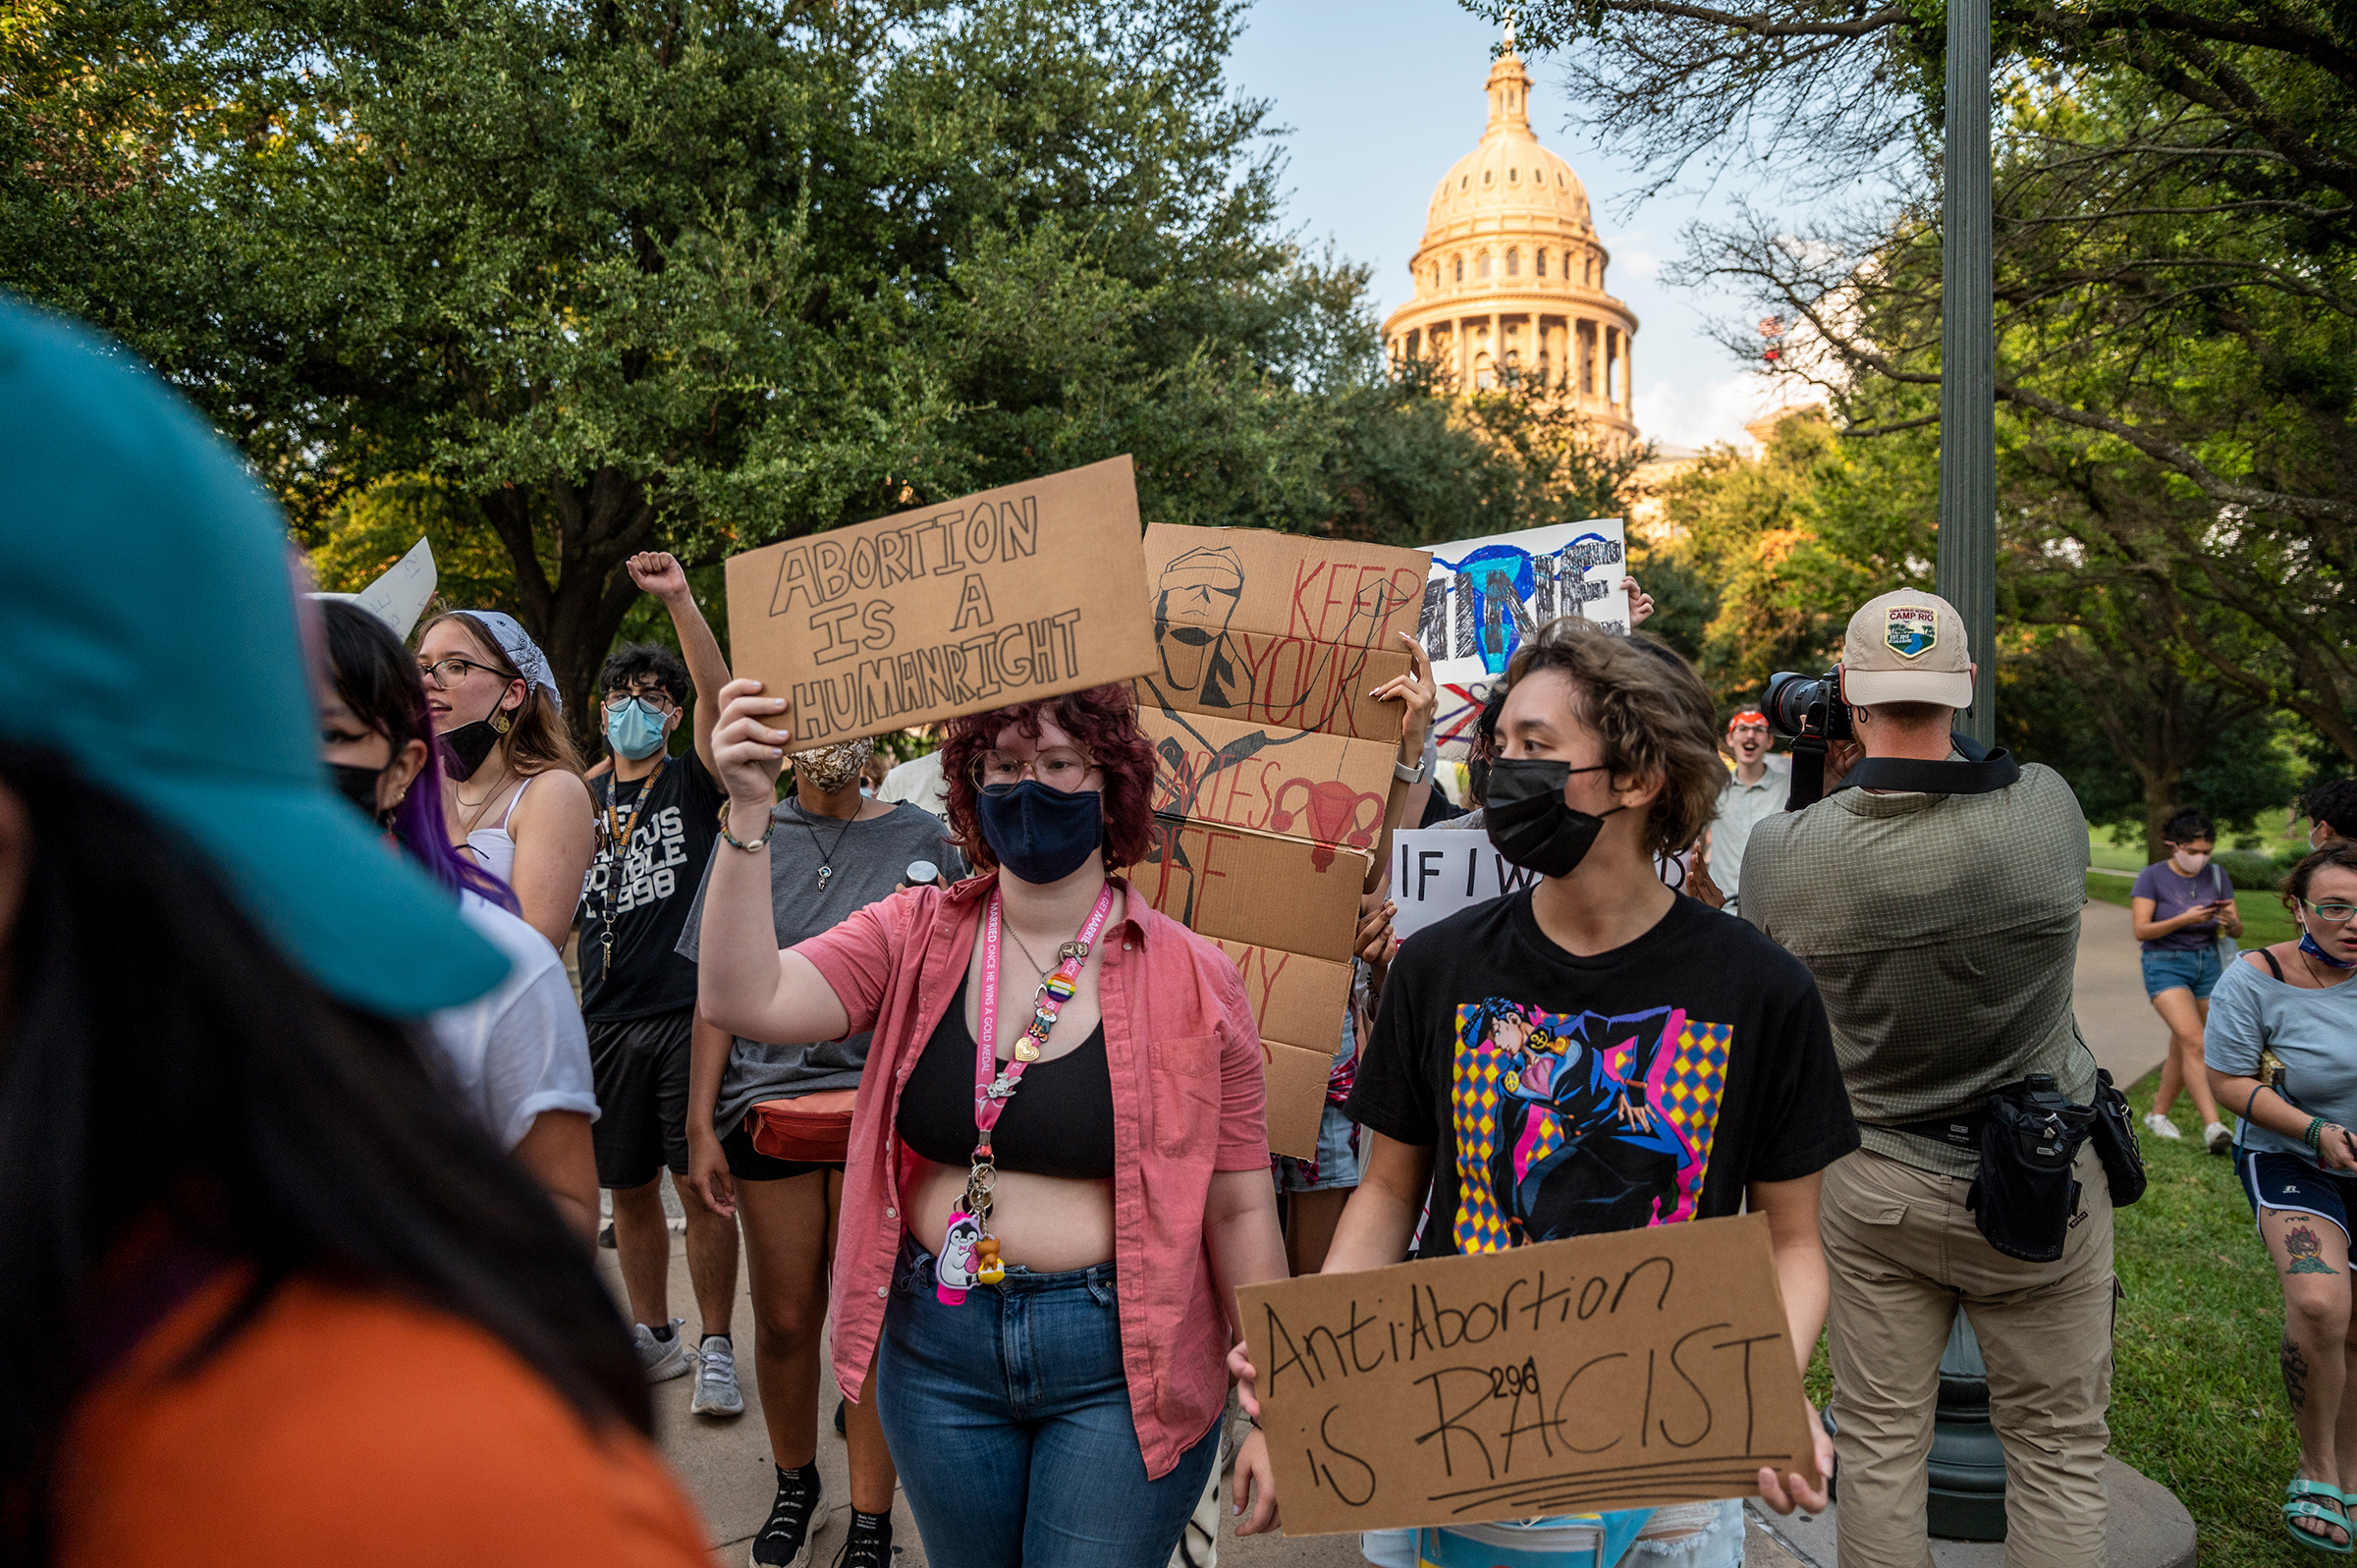 Pro-choice protesters march outside the Texas State Capitol in Austin on Sept. 1, 2021.